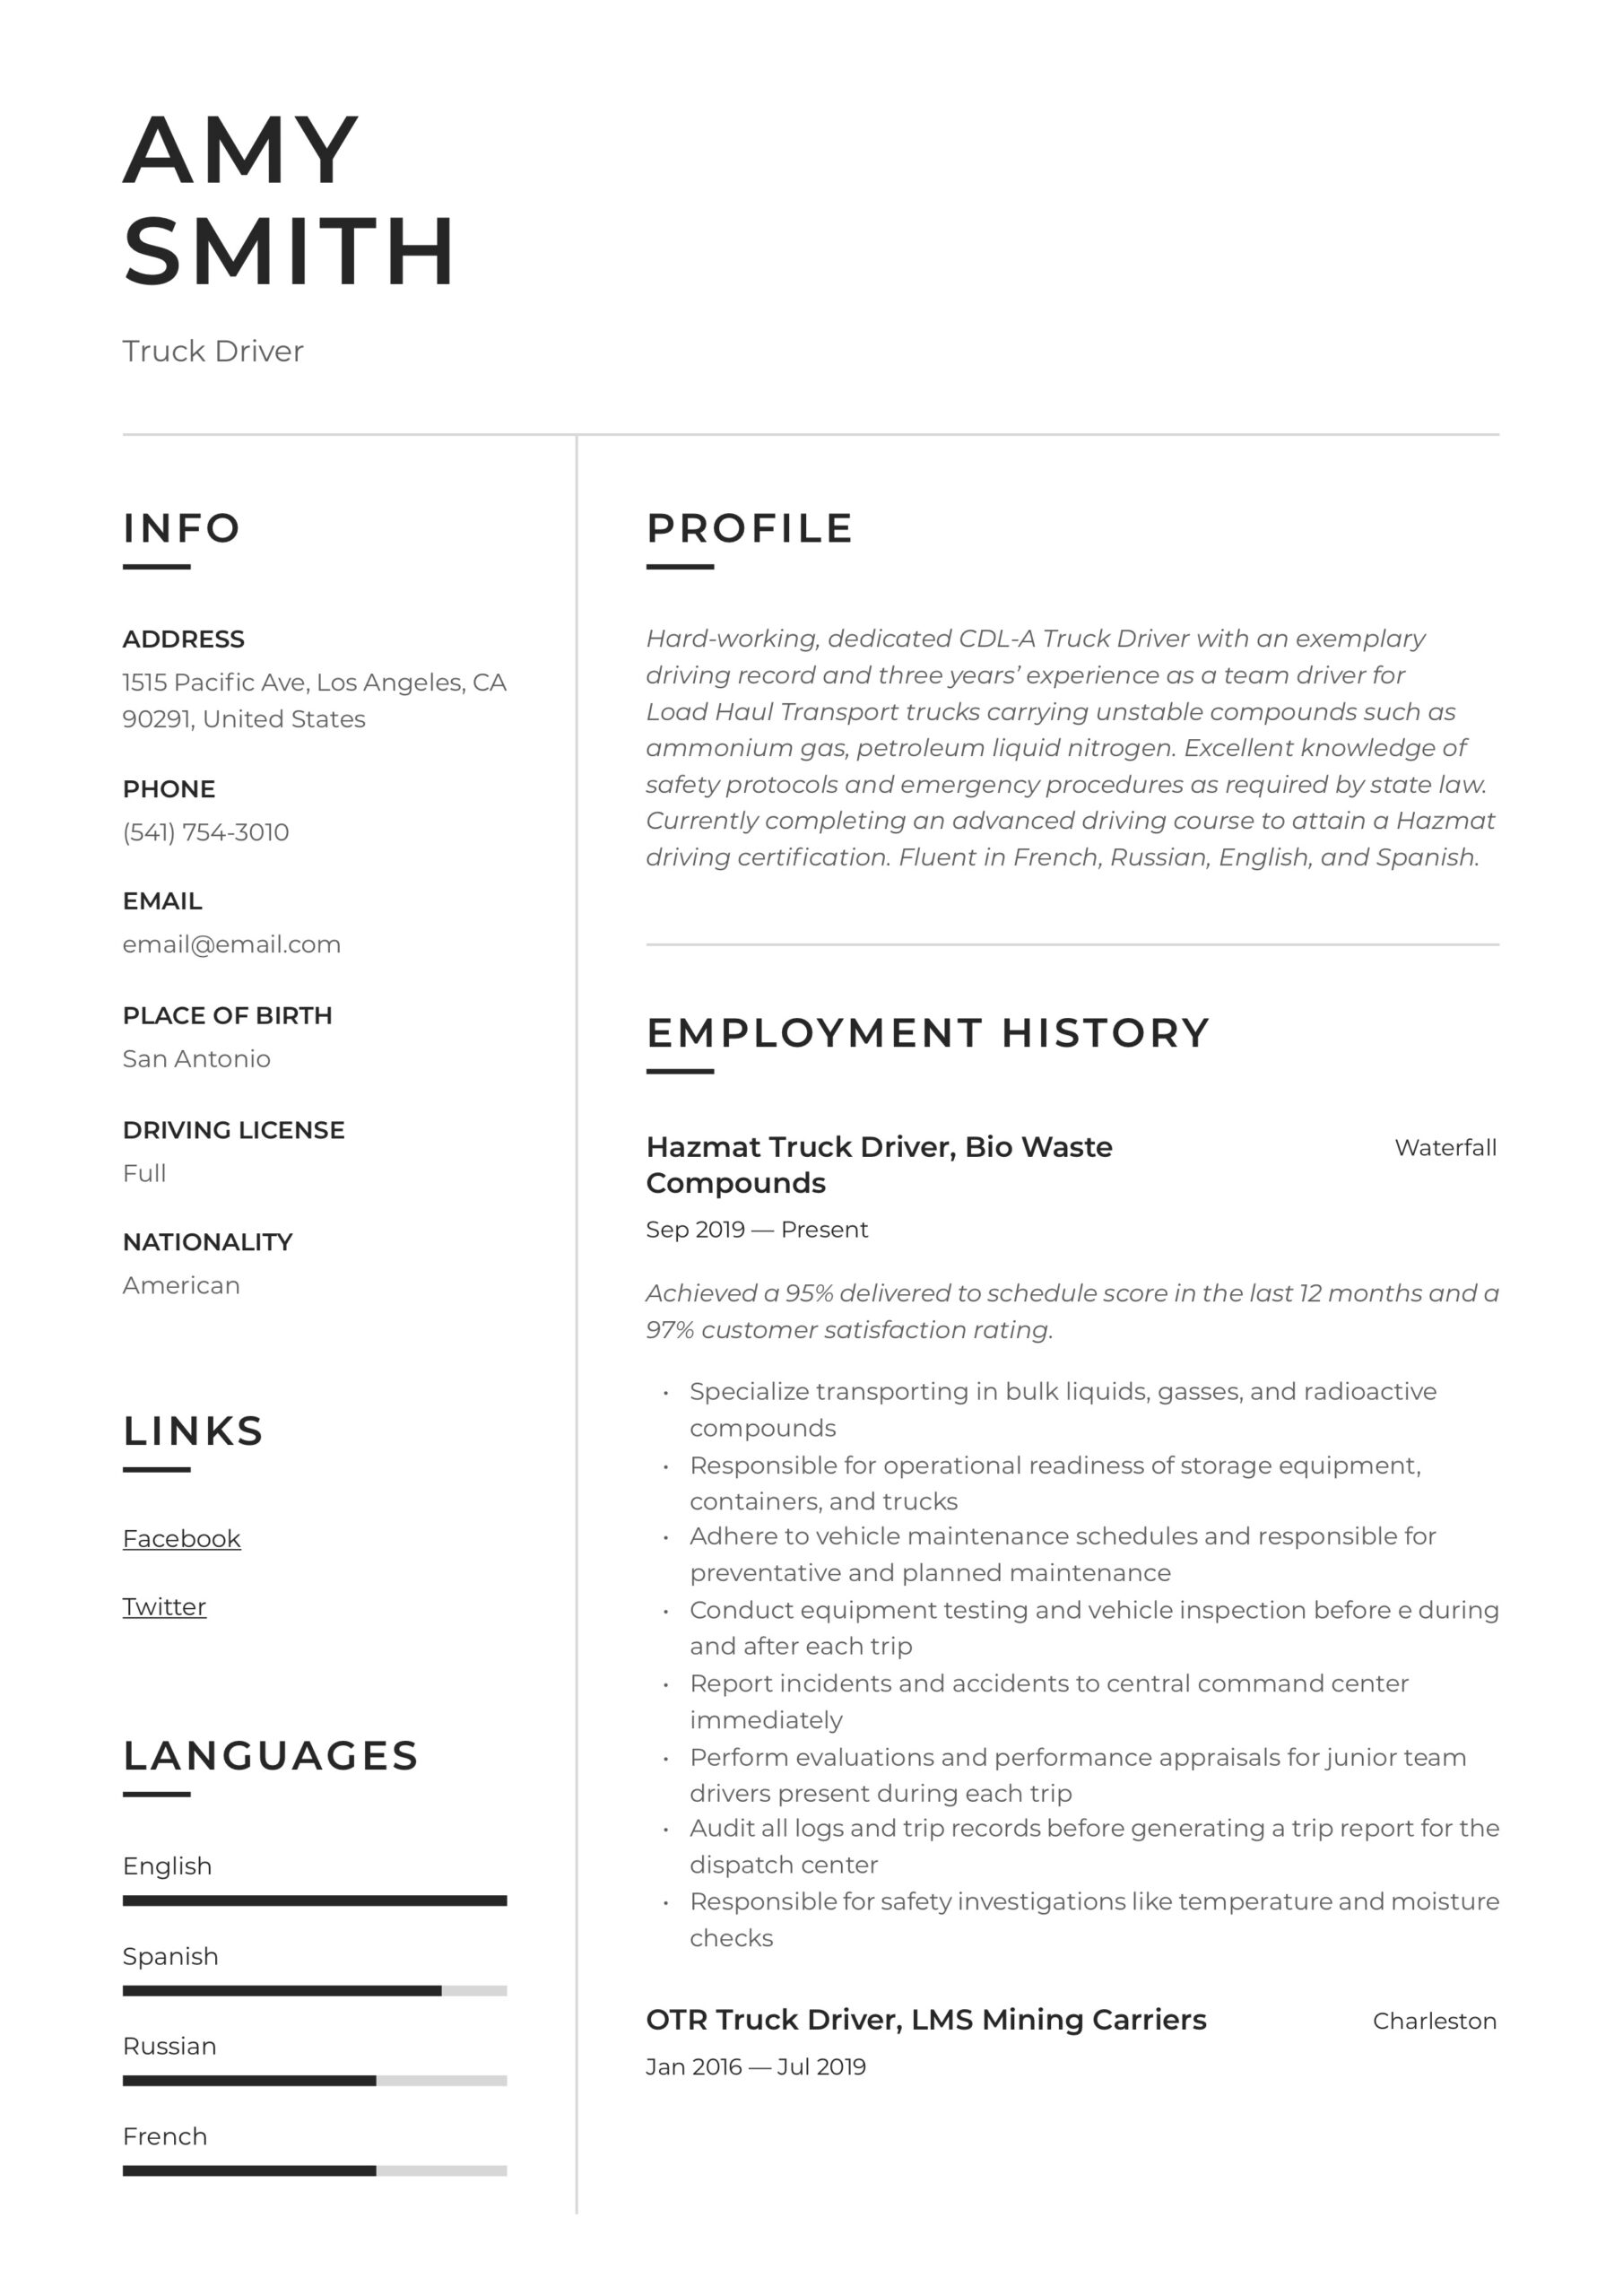 truck driver resume writing guide examples otr format word architect sample excellent Resume Otr Truck Driver Resume